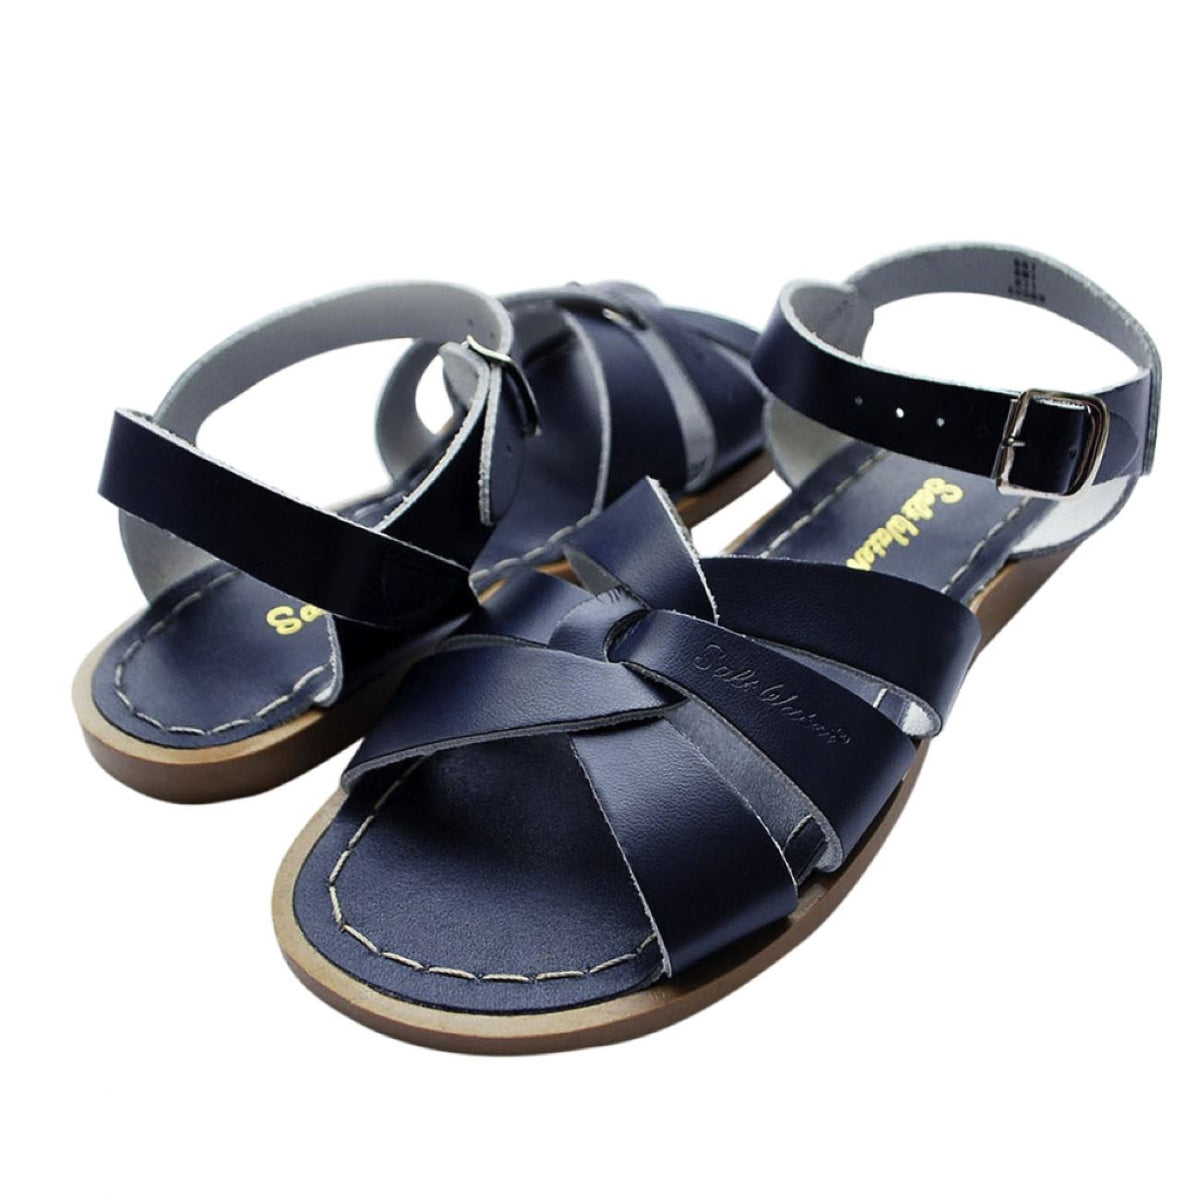 Salt Water Sandals, Original, Child, Navy Sandals Salt Water Sandals